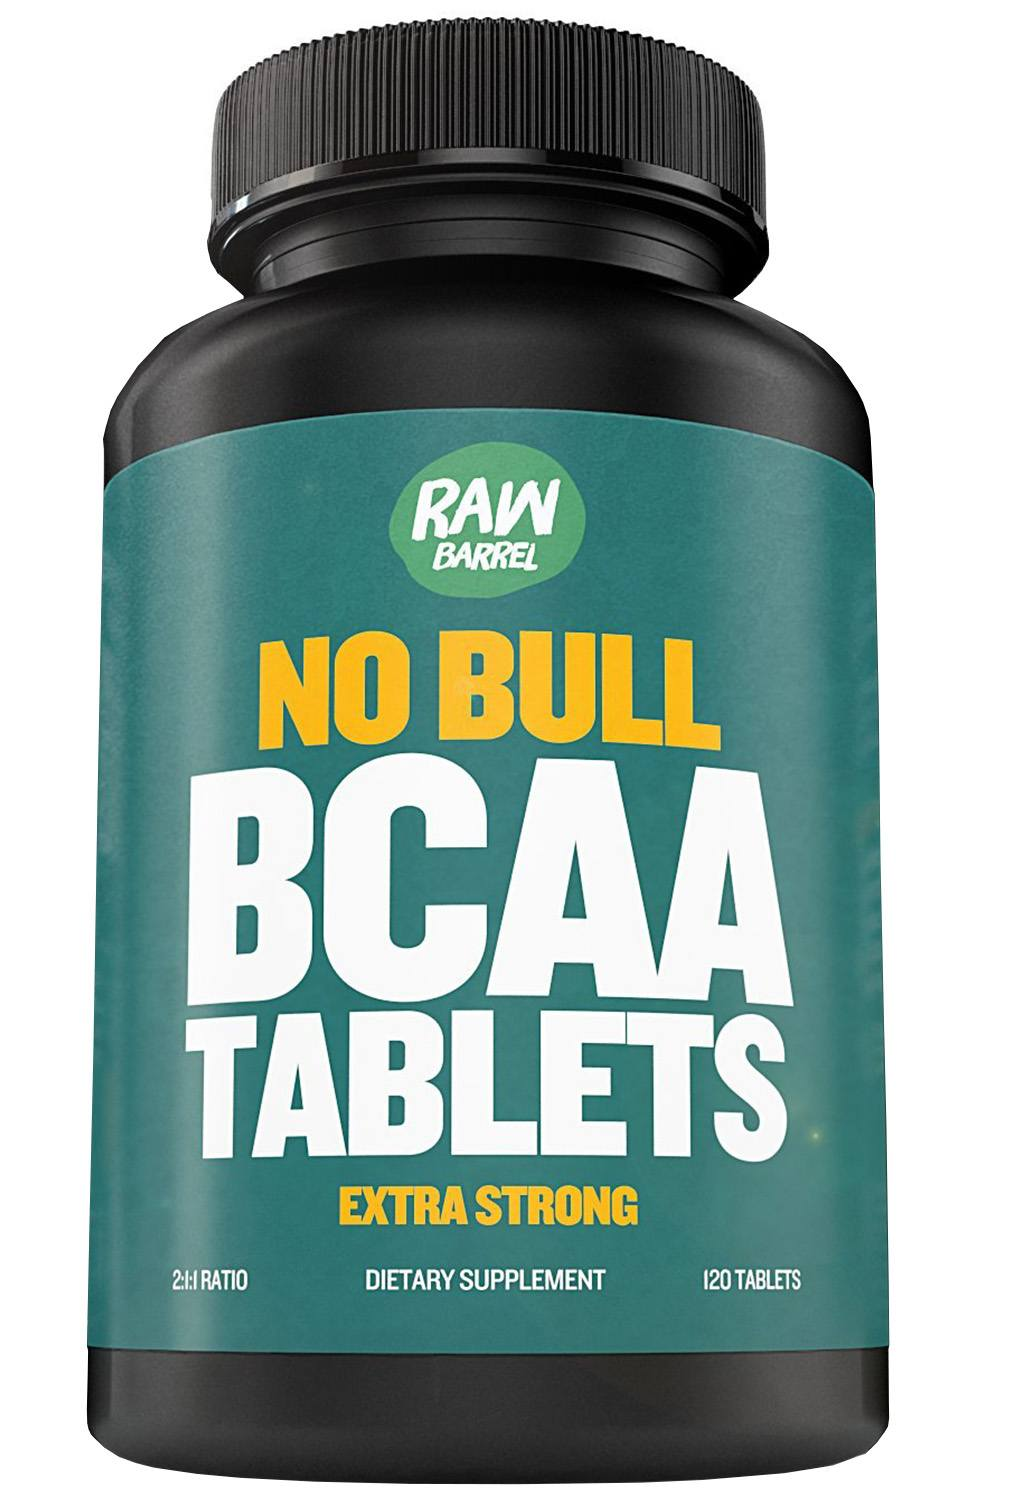 Raw Barrel's - Pure BCAA Tablets